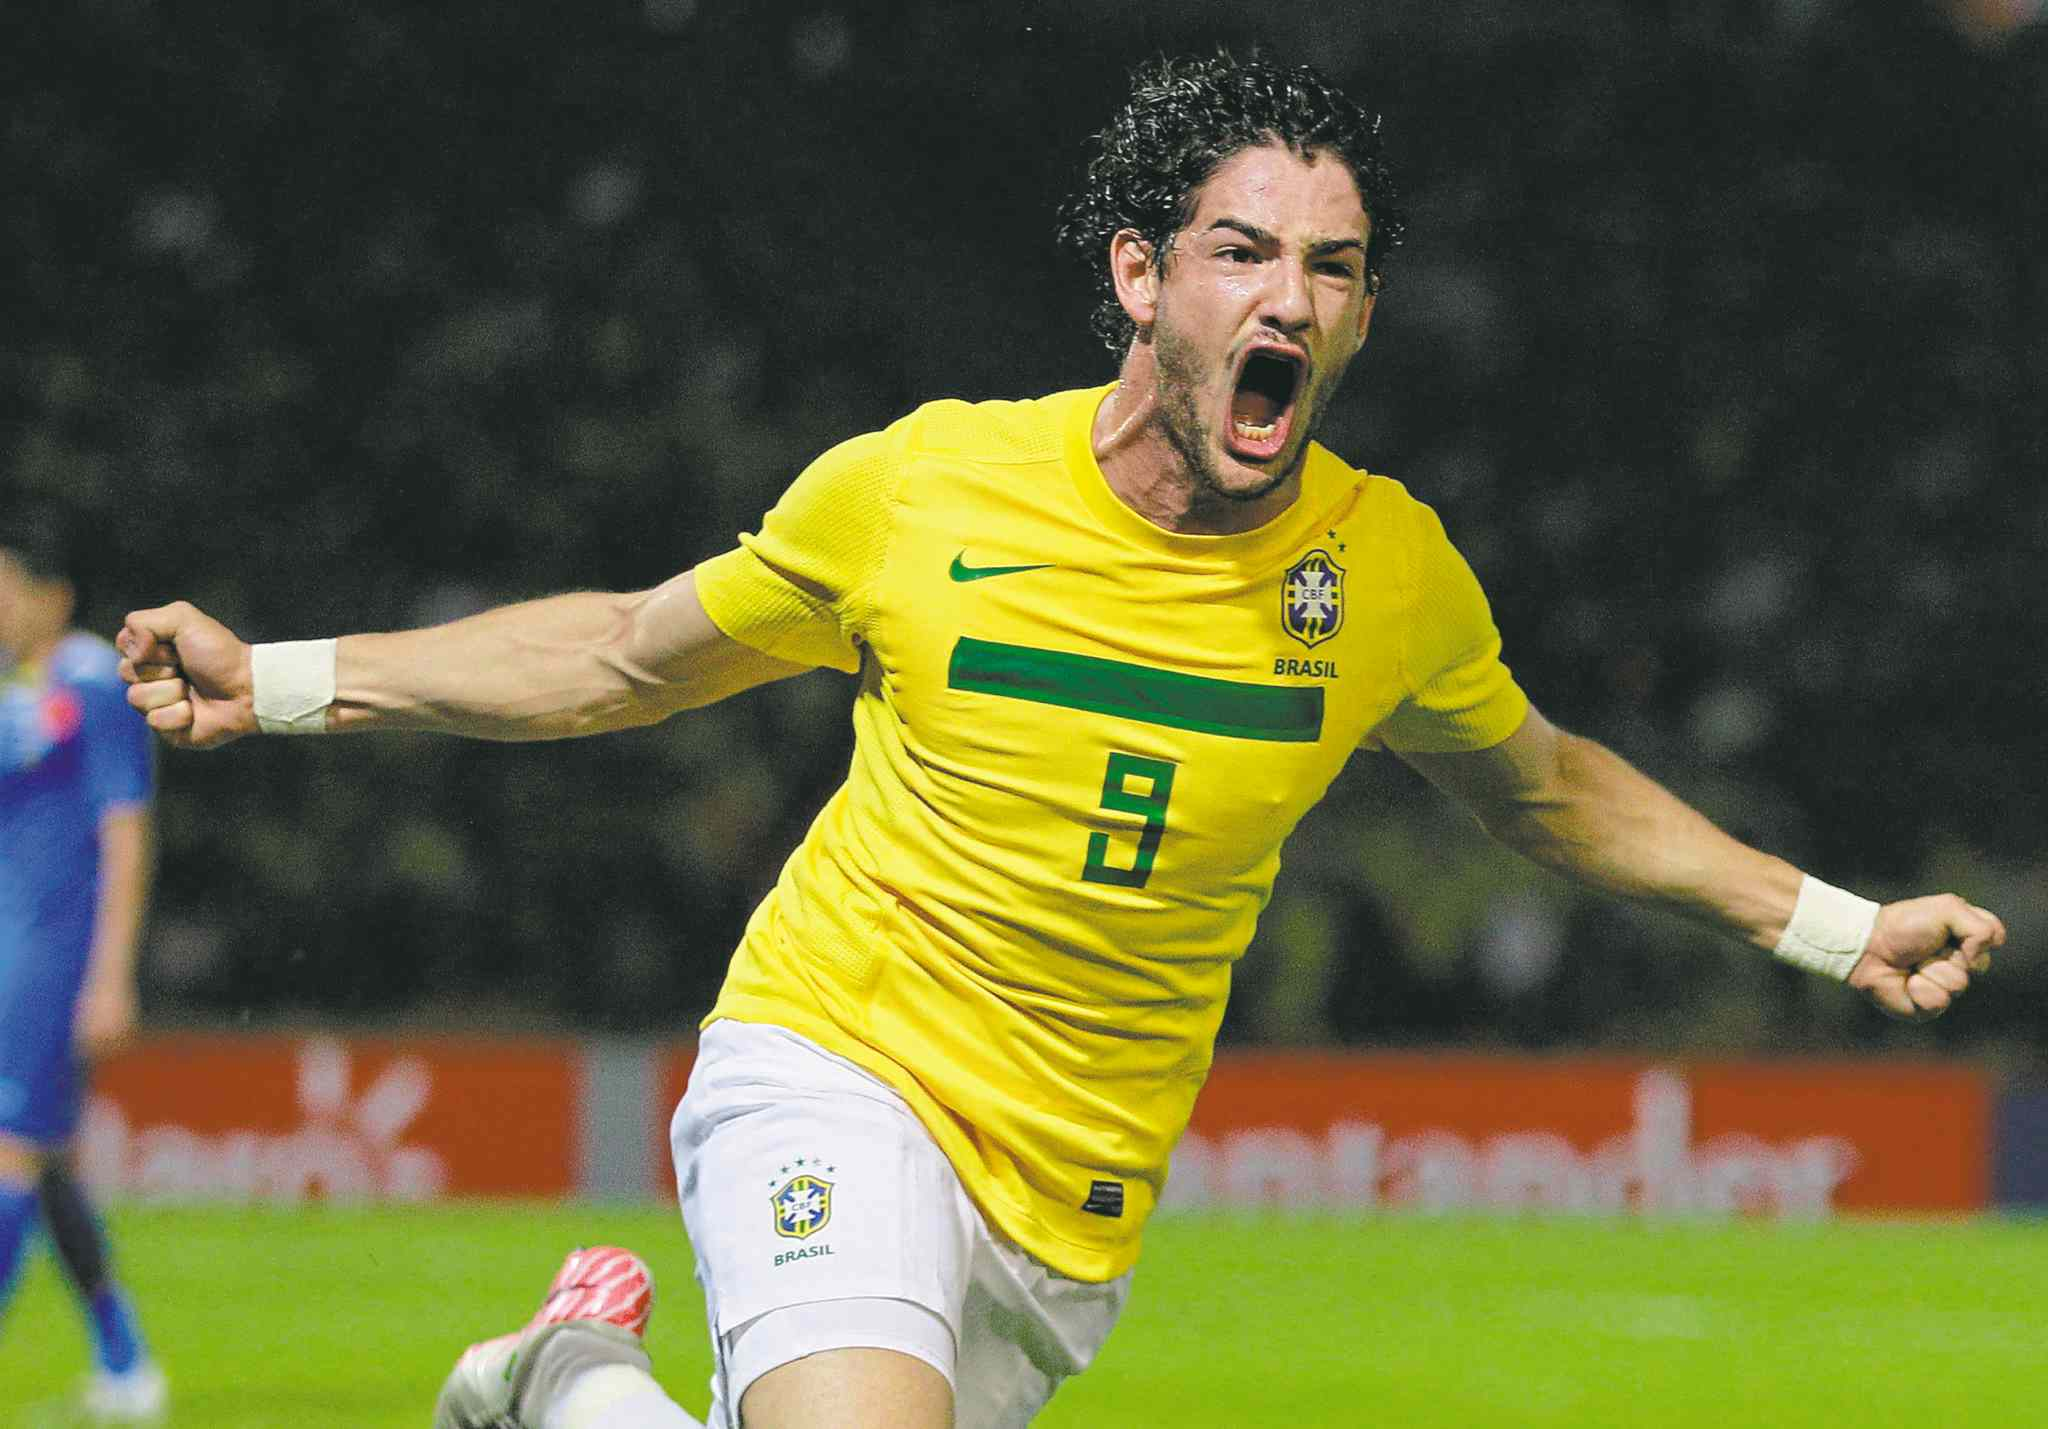 Victor R. Caivano / the associated press filesBrazil�s Alexandre Pato has failed to come anywhere near expectations set for him when he was a teenage phenom.